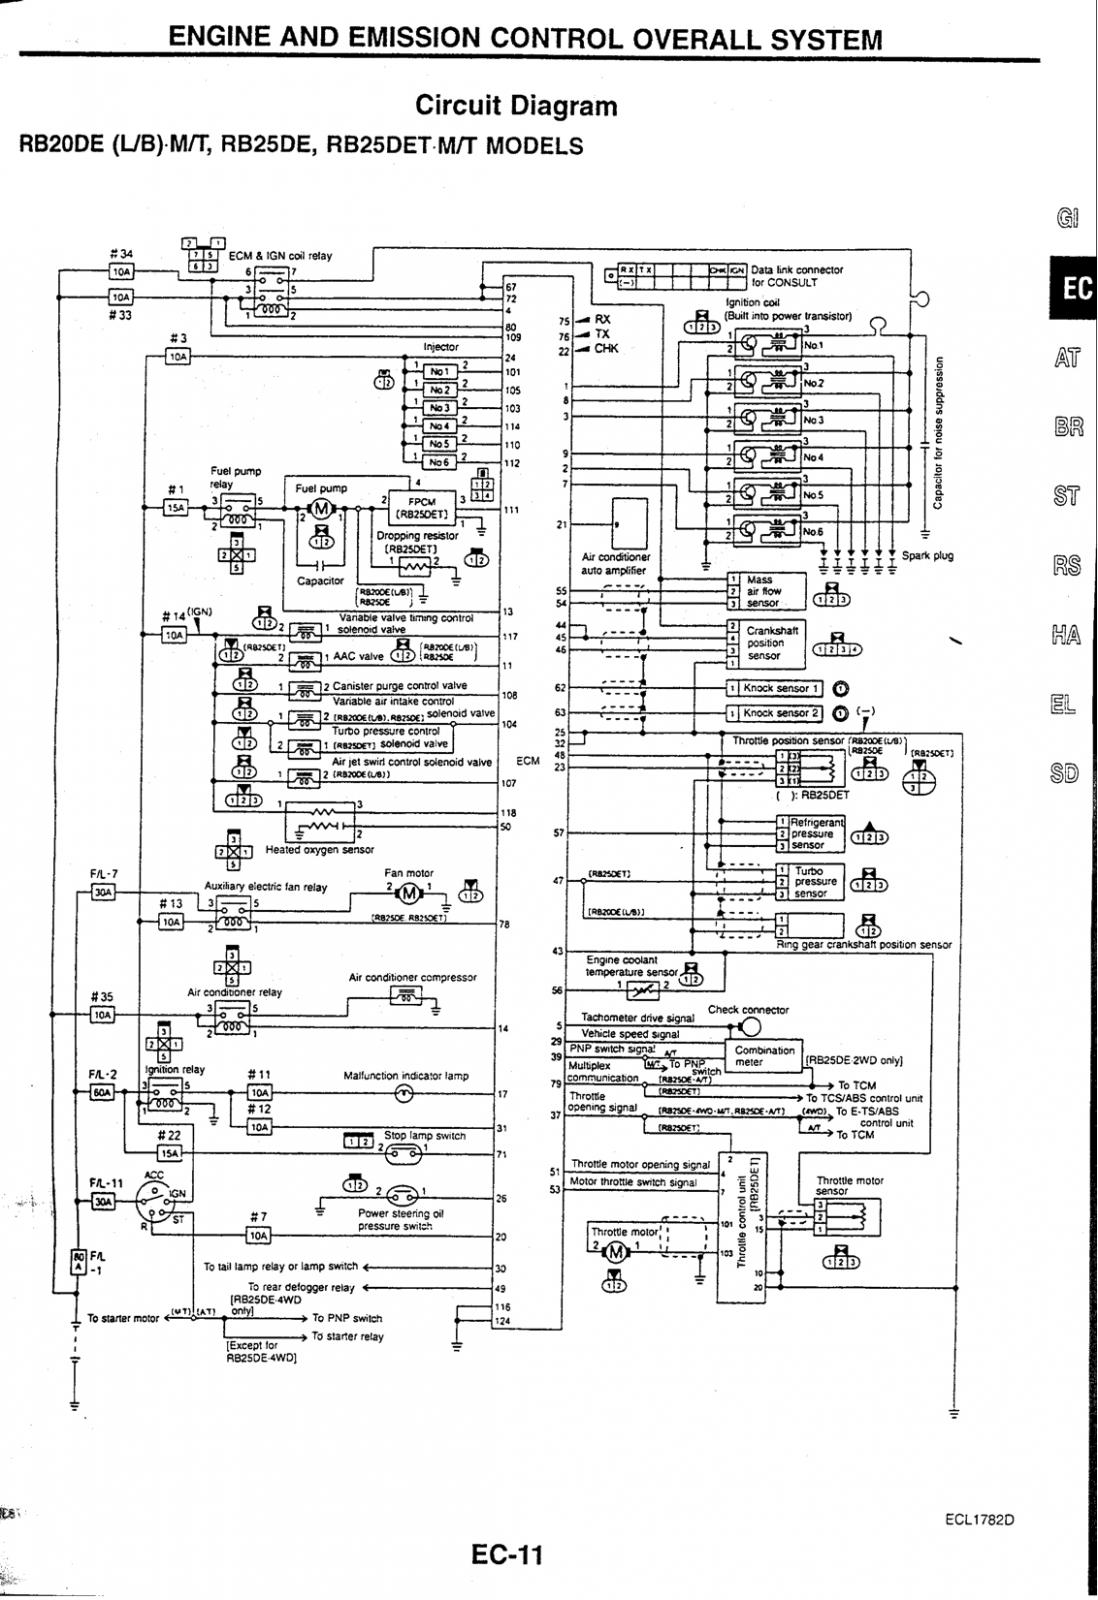 R34 Ecu Wiring Diagram Worksheet And R33 Auto Pin Rb25 On Pinterest Simple Rh 4 1 Sweetlittlemoments De